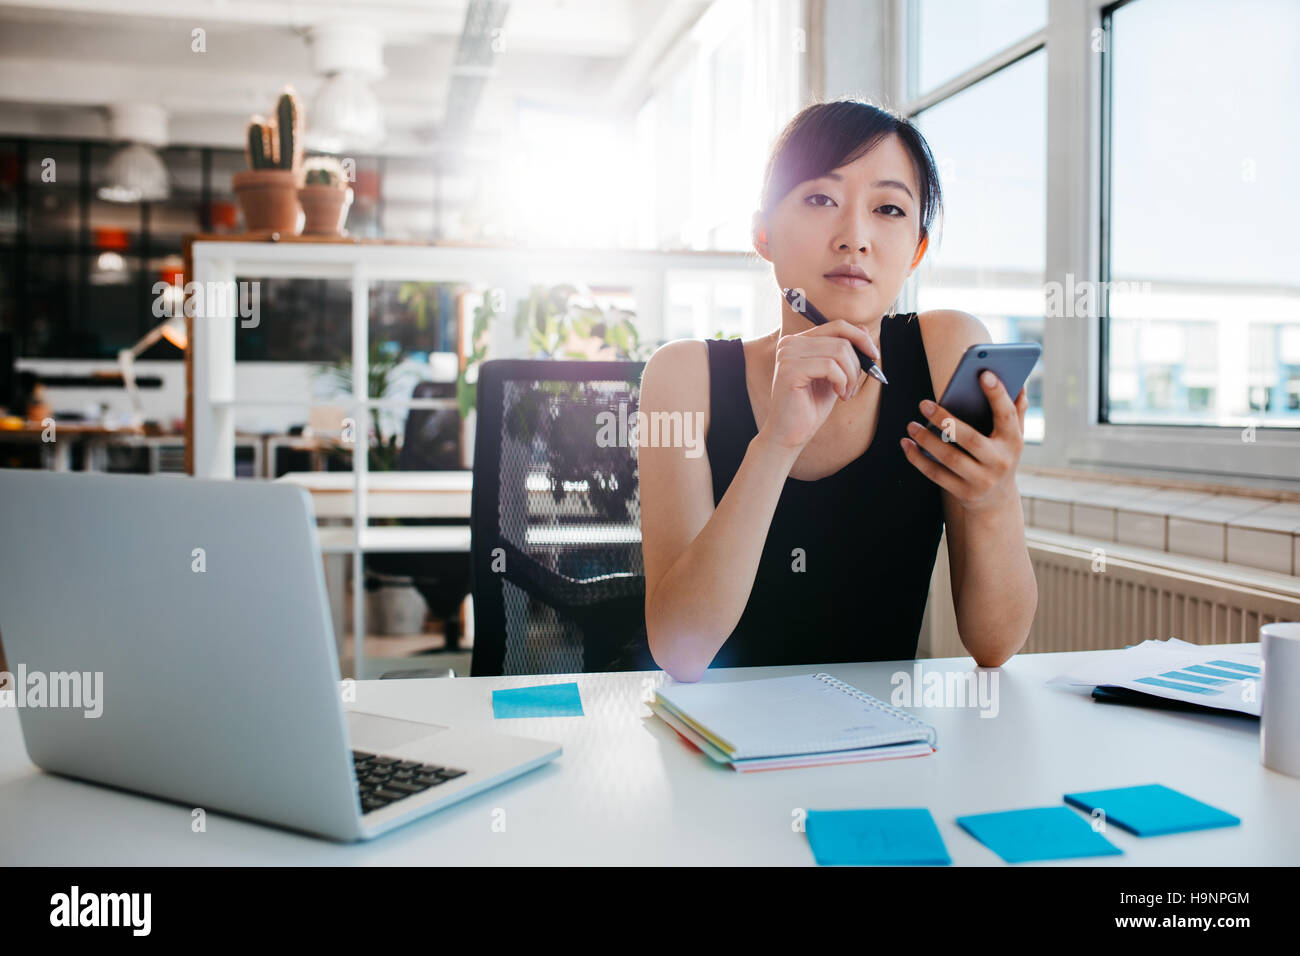 Portrait of confident asian woman sitting at her desk with mobile phone. Asian businesswoman working in office. - Stock Image